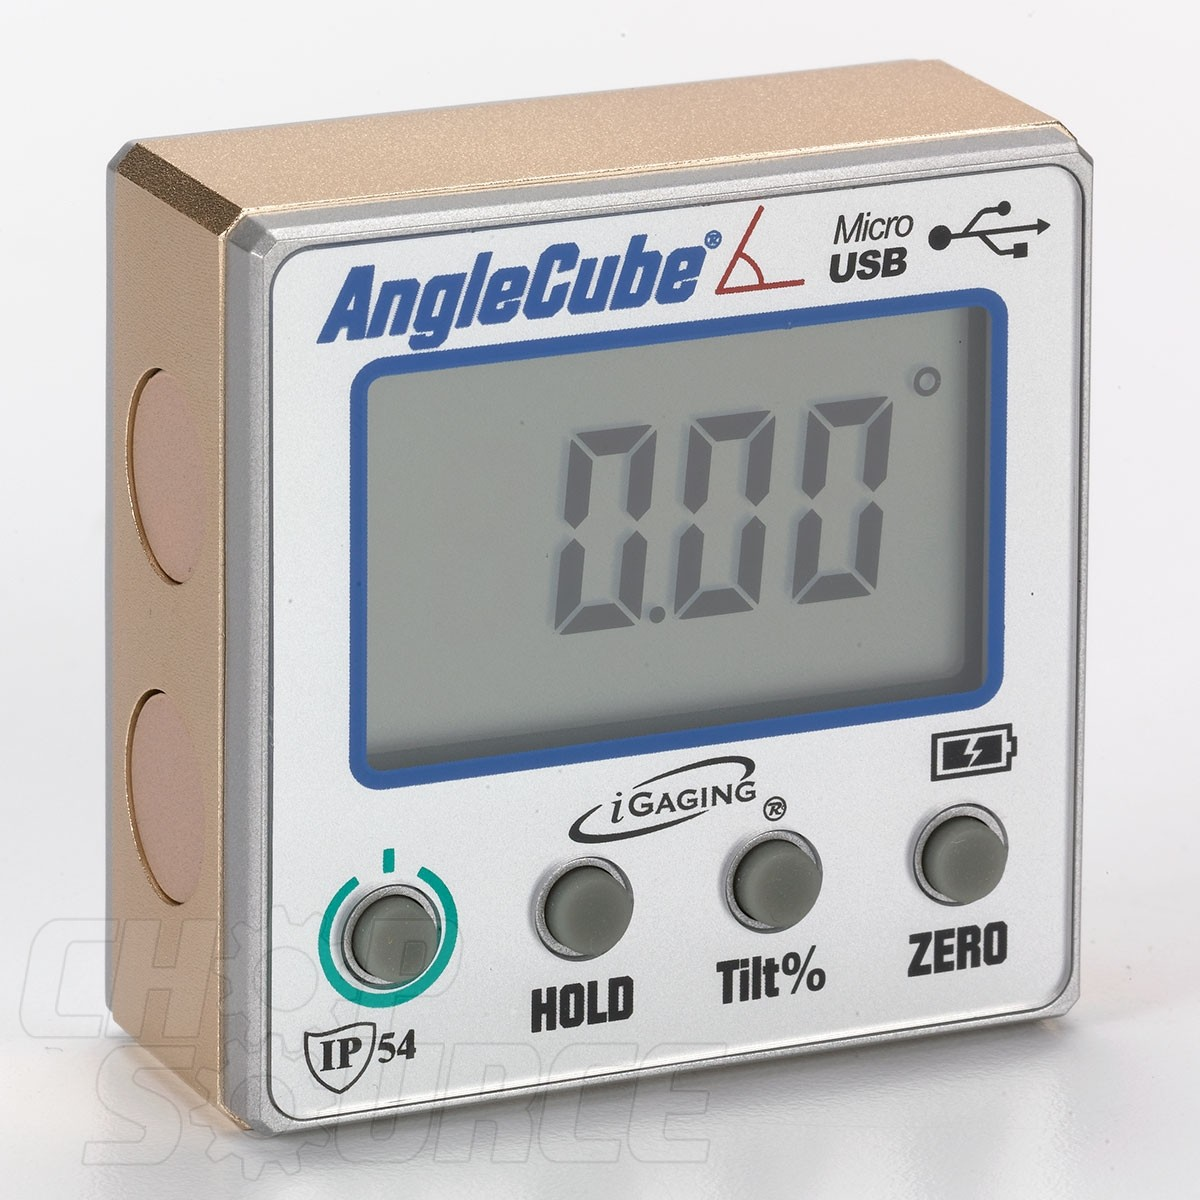 AngleCube - Digital Angle Finder - Gen 3 - Front